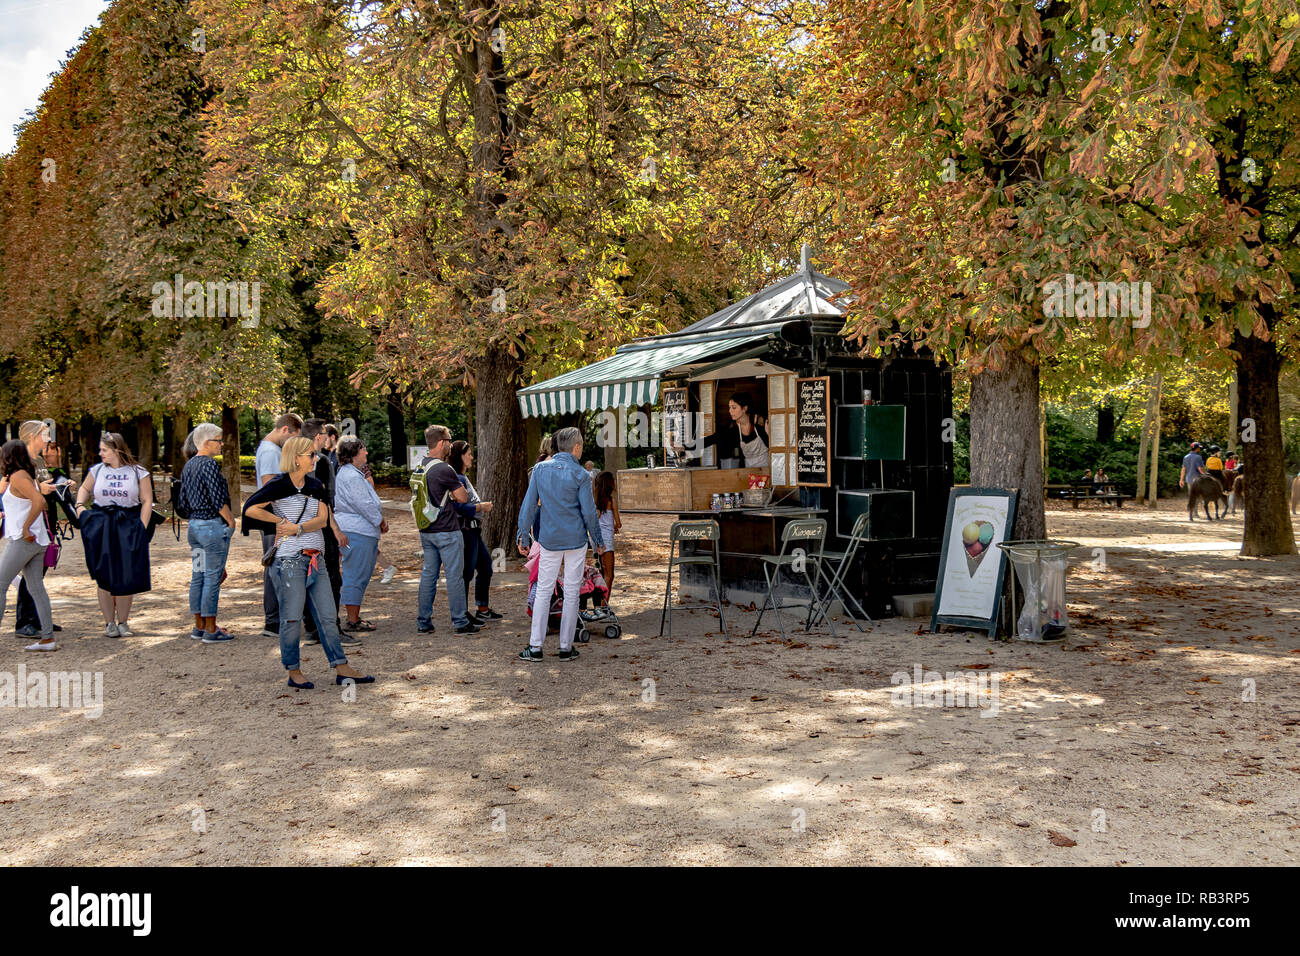 People queuing at a refreshment kiosk in Jardin du Luxembourg ,Paris - Stock Image